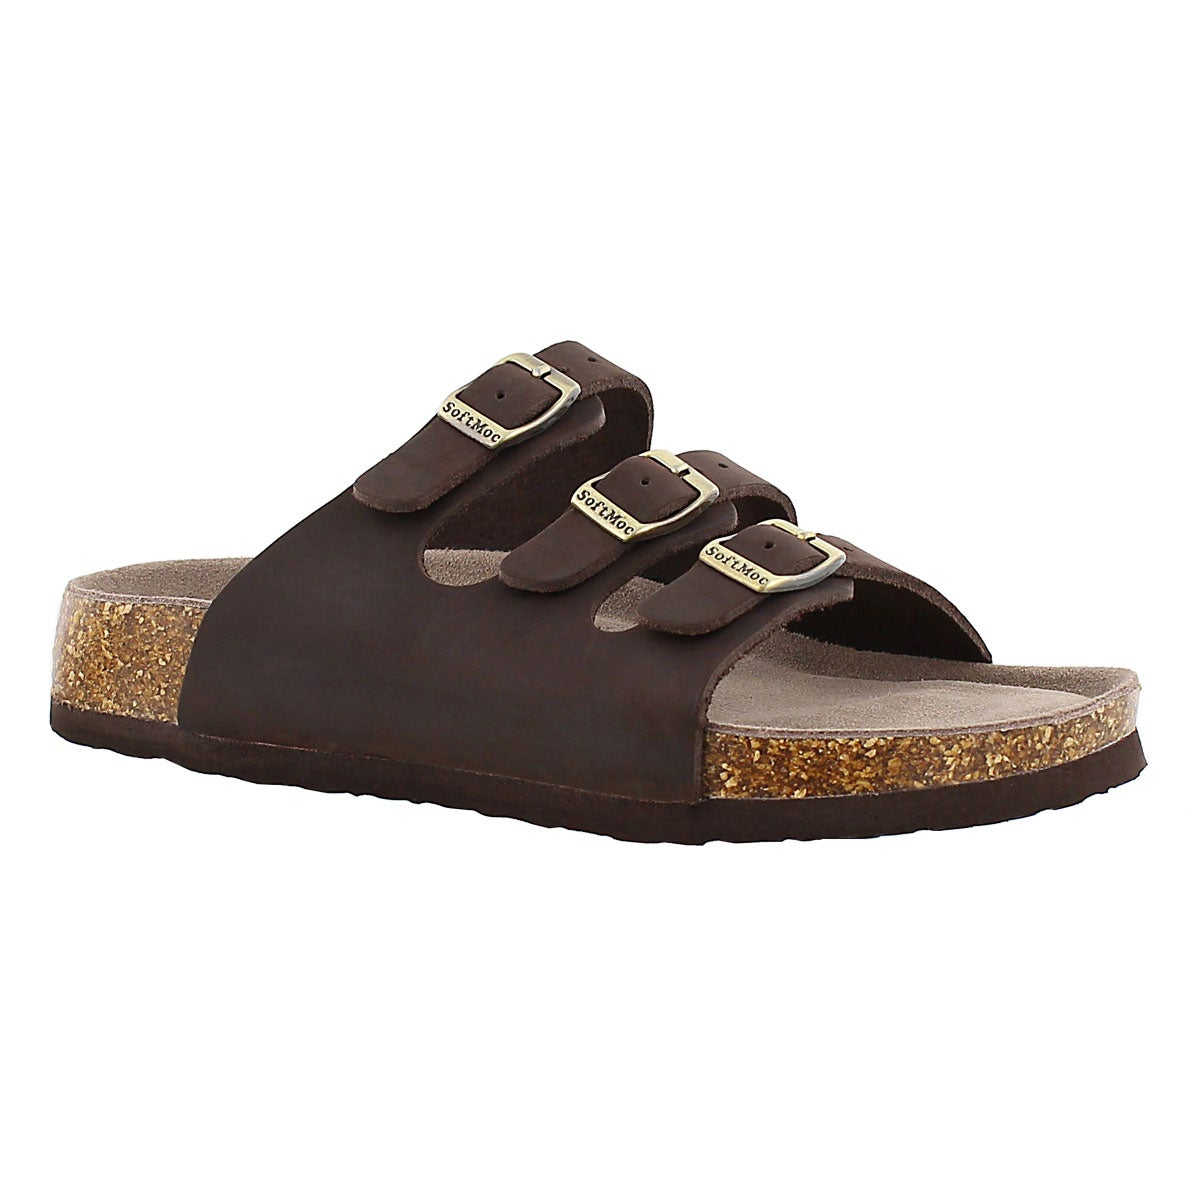 Women's ALEXIS 2 brown memory foam sandals